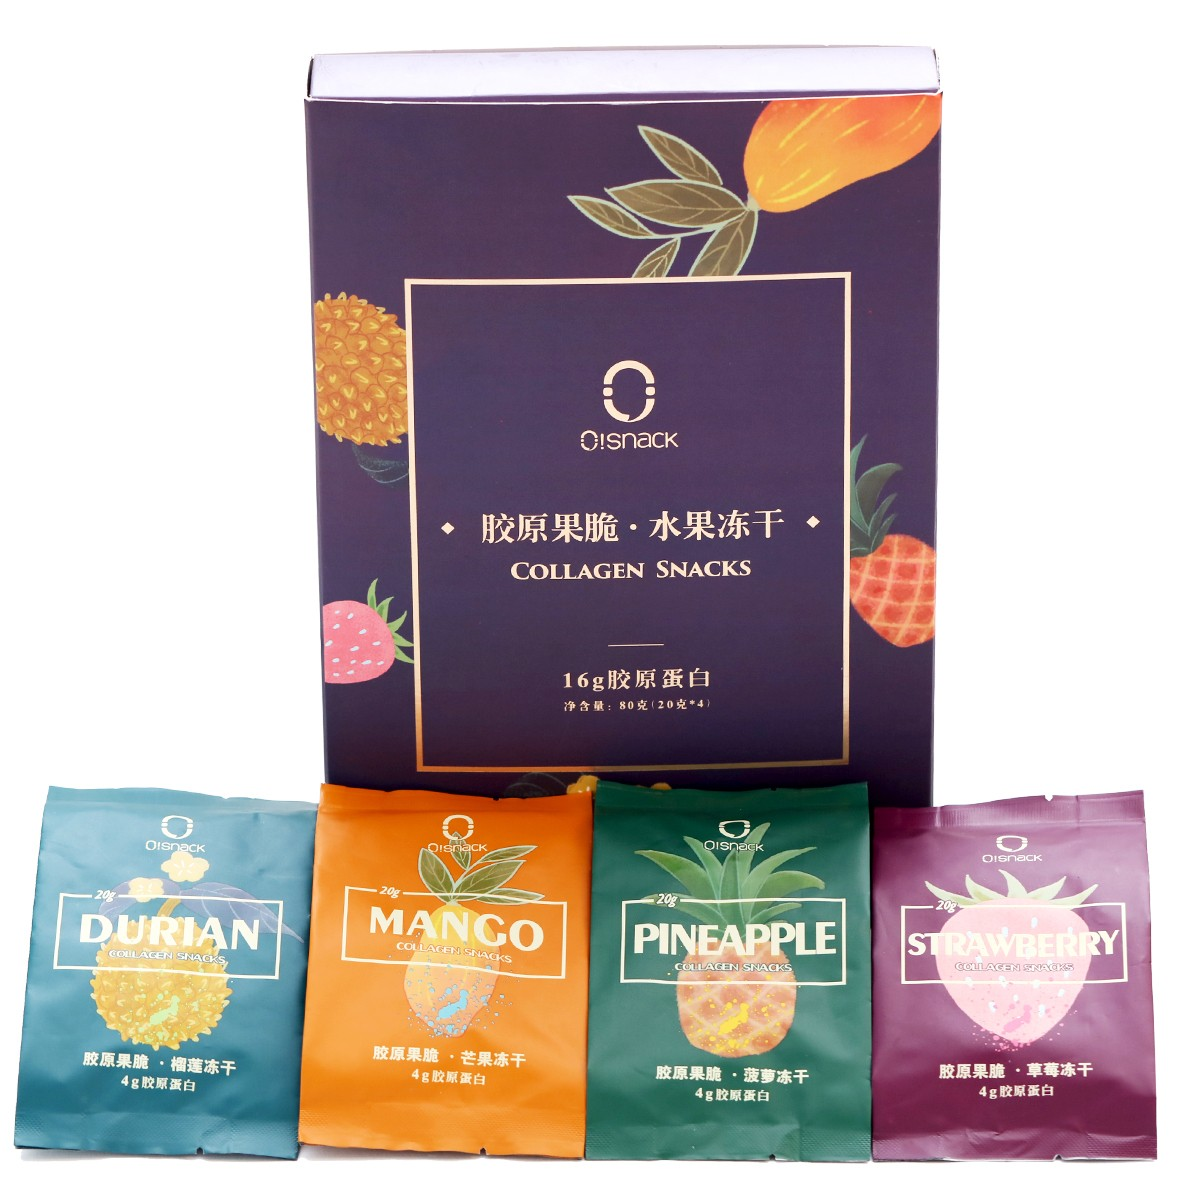 OSNACK Beauty Collagen Snack 16 days 320g Freeze-dried Fruits Mango Pineapple Strawberry Durian